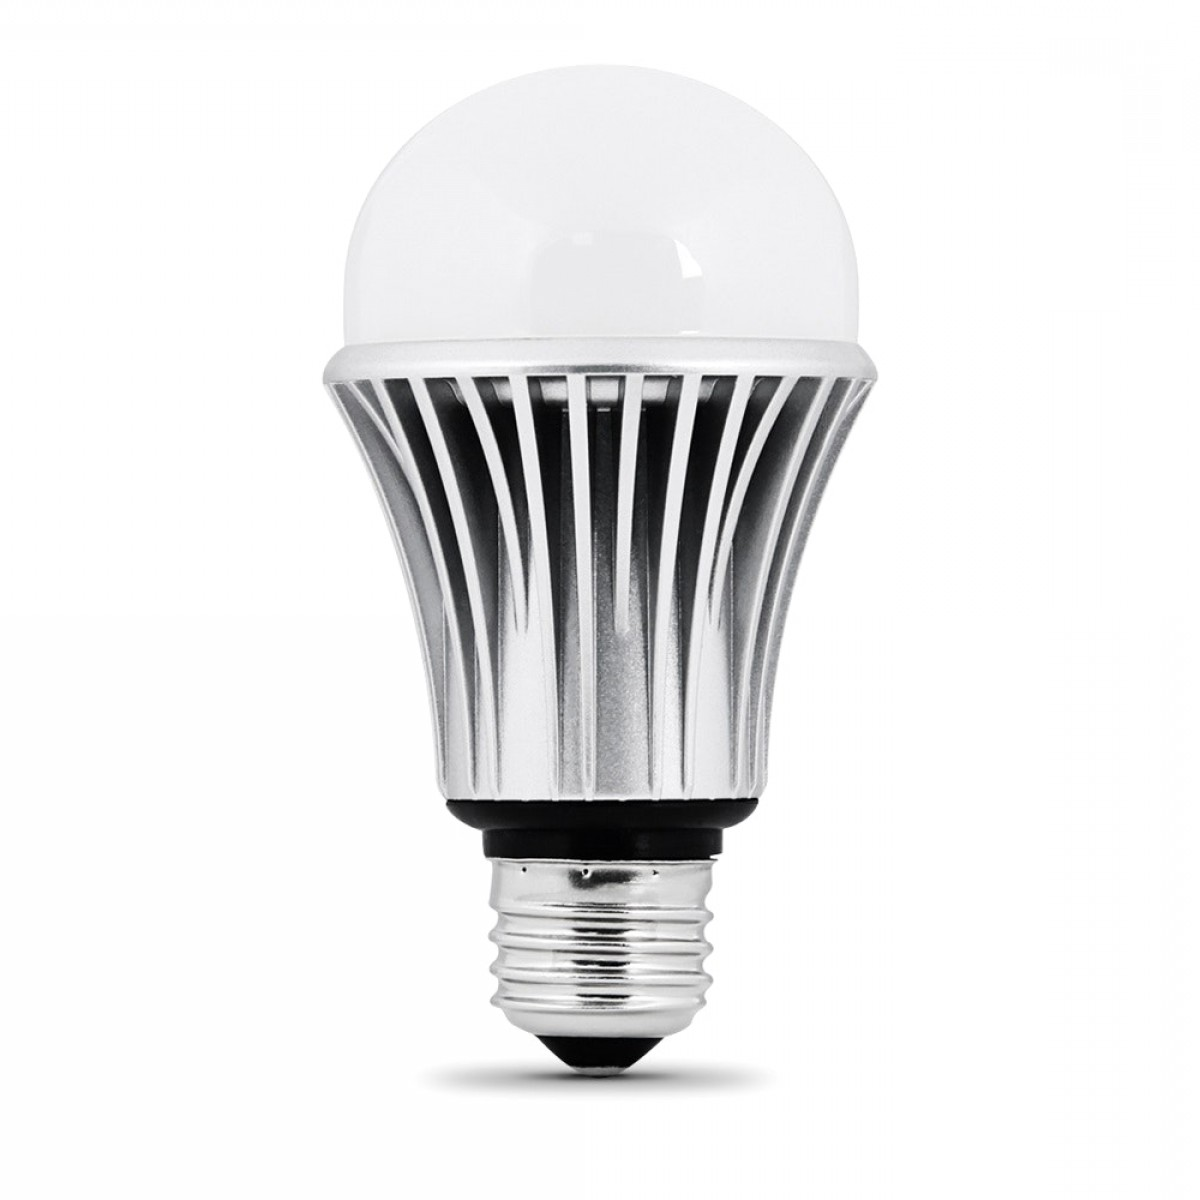 1200x1200 Free Led Light Bulbs And Stunning Decor With Bulb Vector